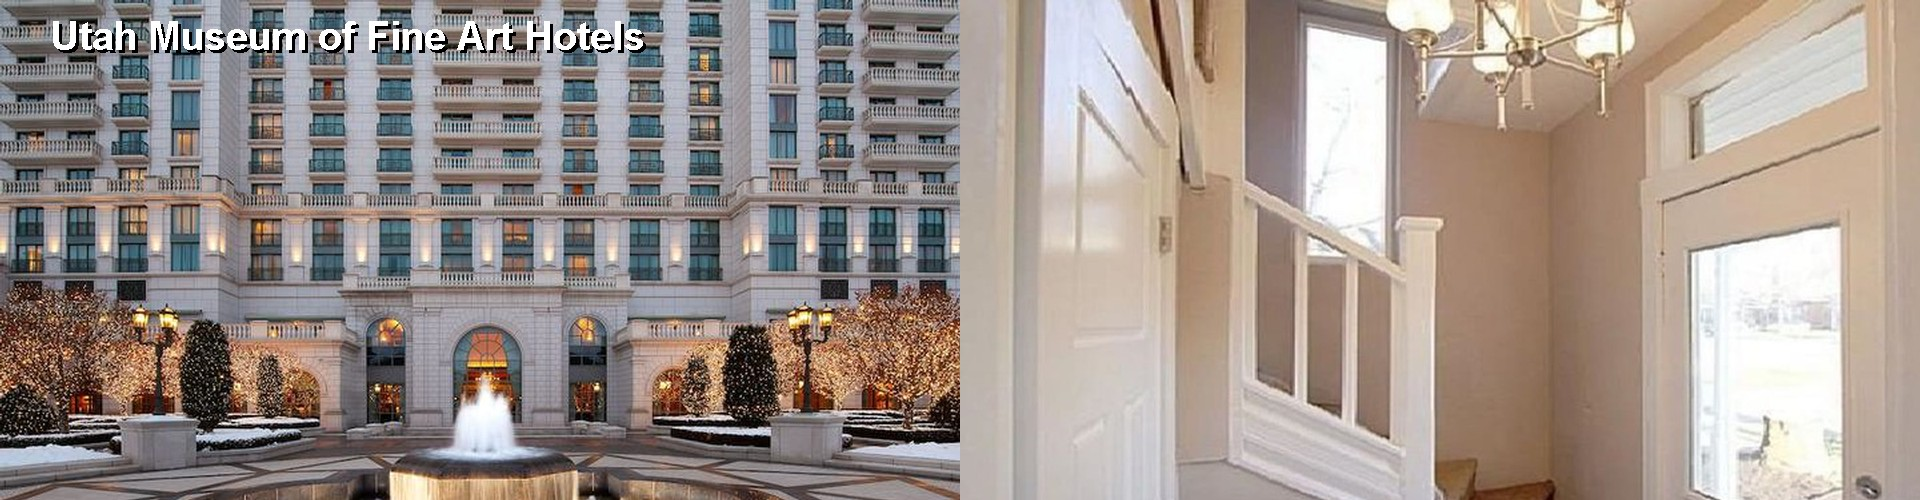 5 Best Hotels near Utah Museum of Fine Art